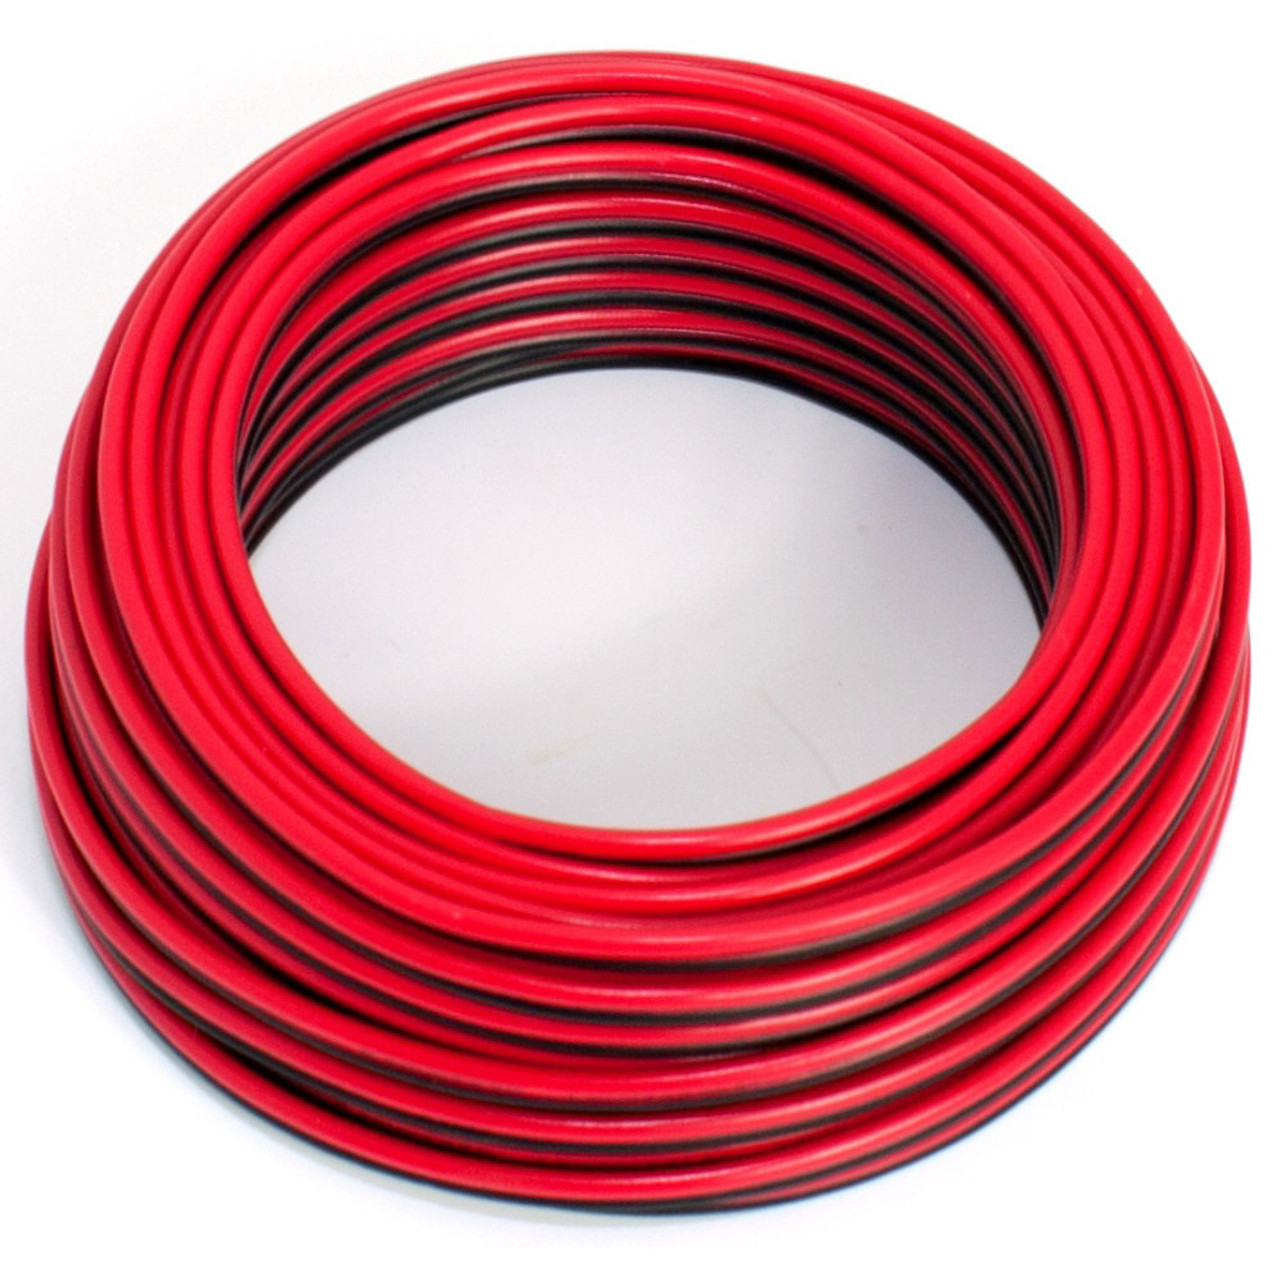 MKGT AUTOMOTIVE 12V 24V SINGLE CORE THINWALL RED//BLACK CAR CABLE WIRE AUTO MARINE 16.5Amp 1.0mm BLACK, 100 Metres